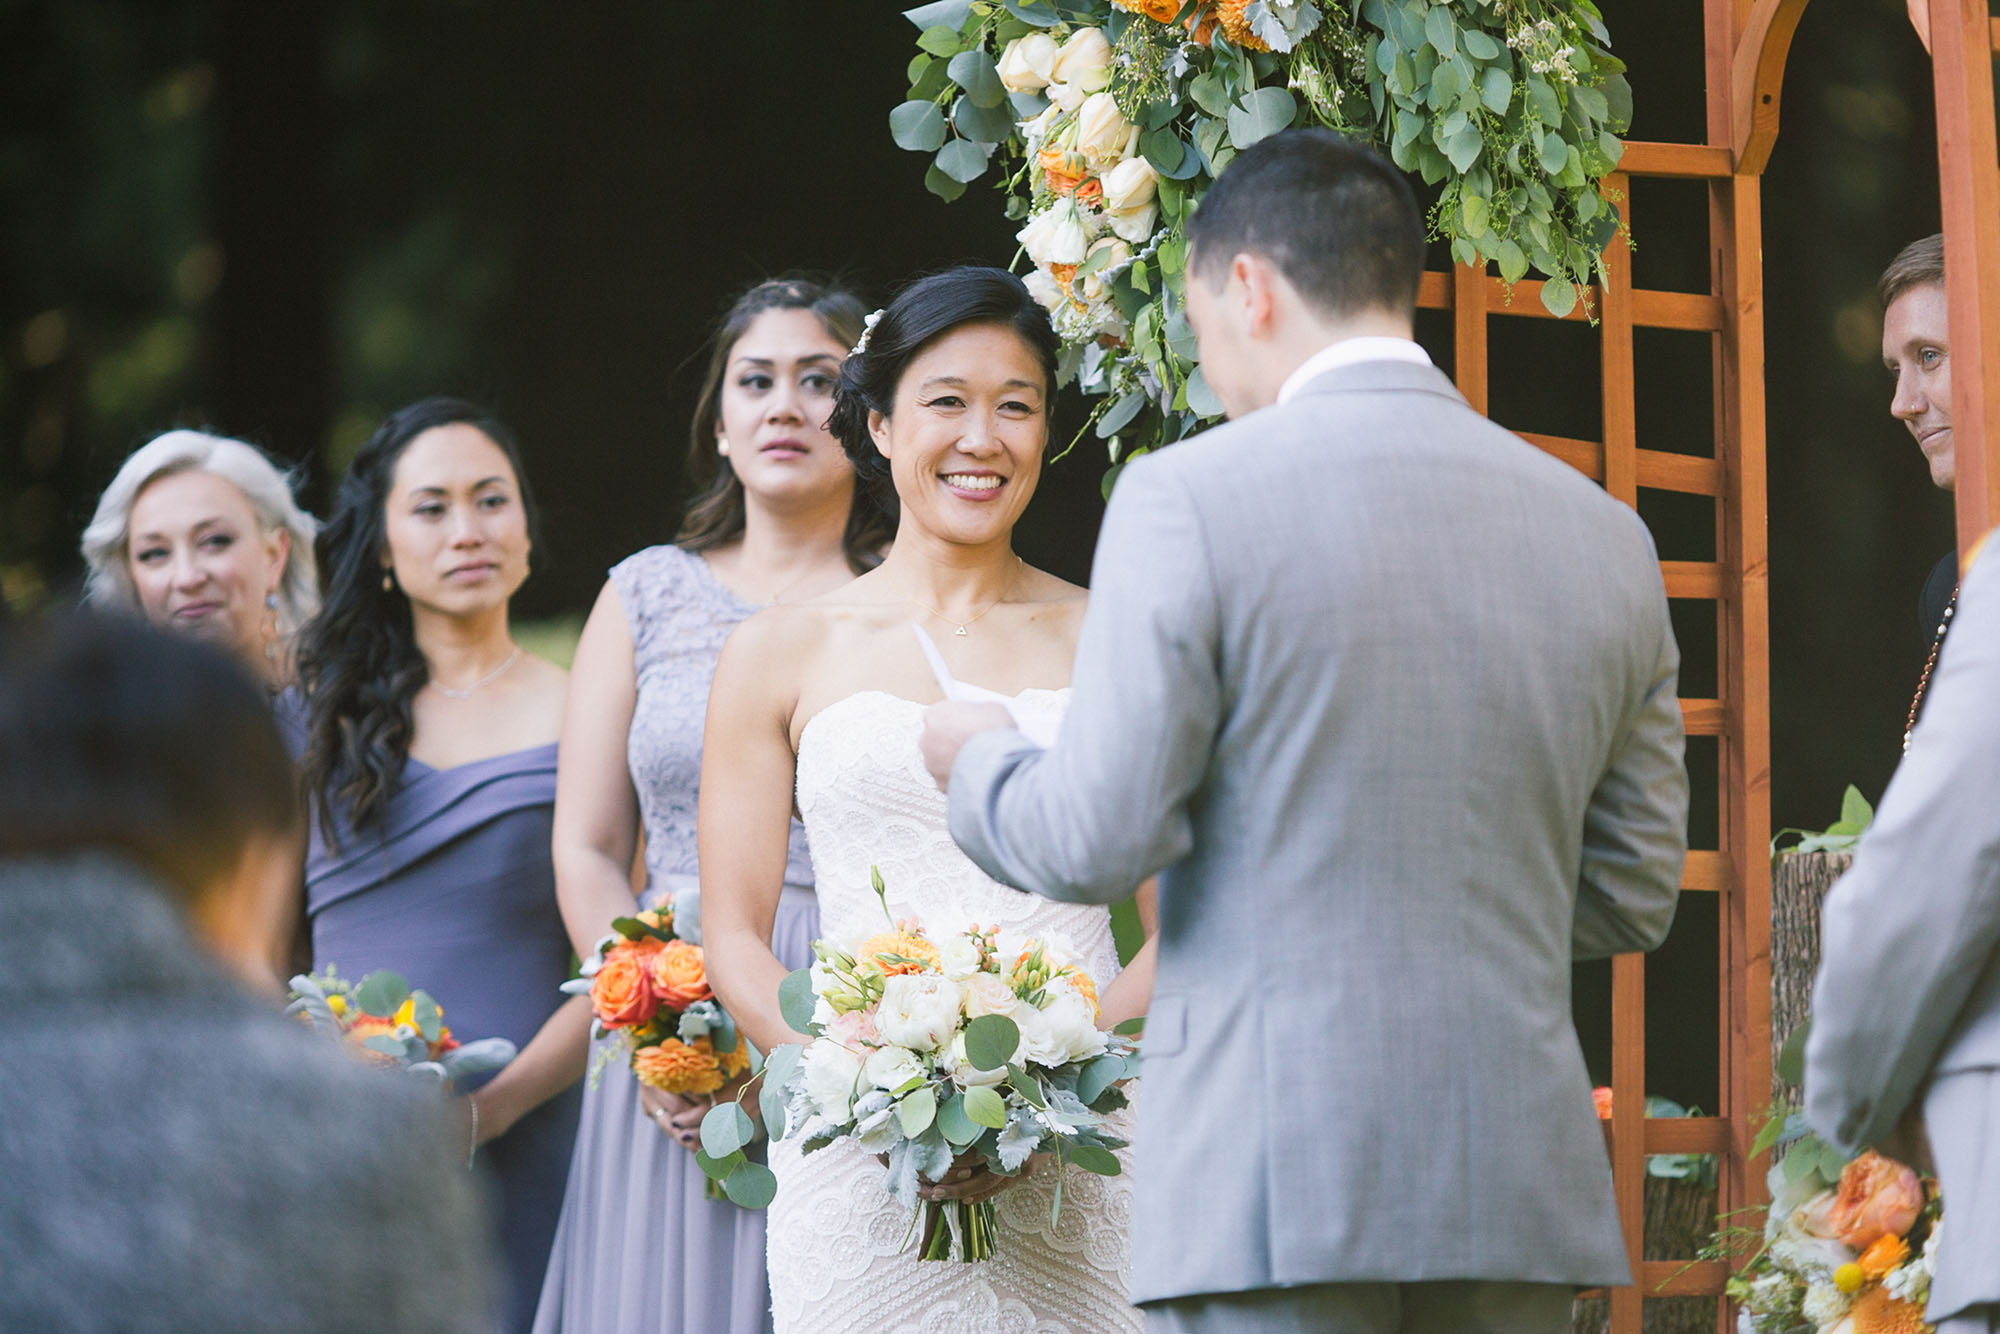 happy bride in her white dress smiles at her handsome groom reading his wedding vows during their ceremony celebration at their mountain terrace wedding in the santa cruz mountains los gatos hills palo alto hills